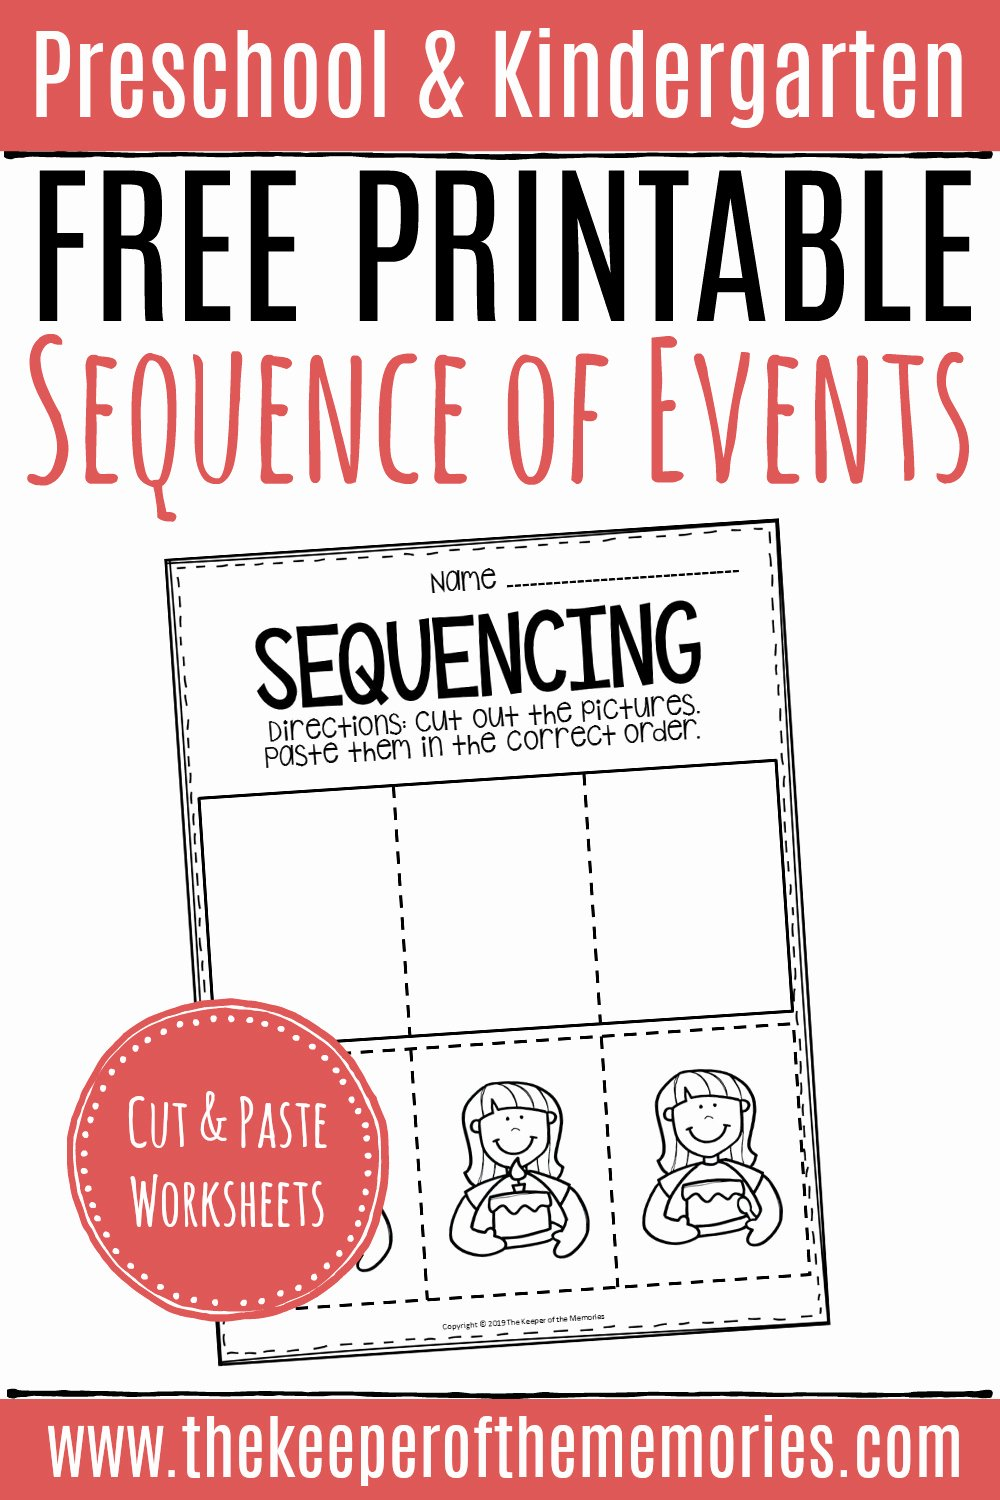 Picture Sequencing Worksheets for Preschoolers Printable Free Printable Sequence Of events Worksheets